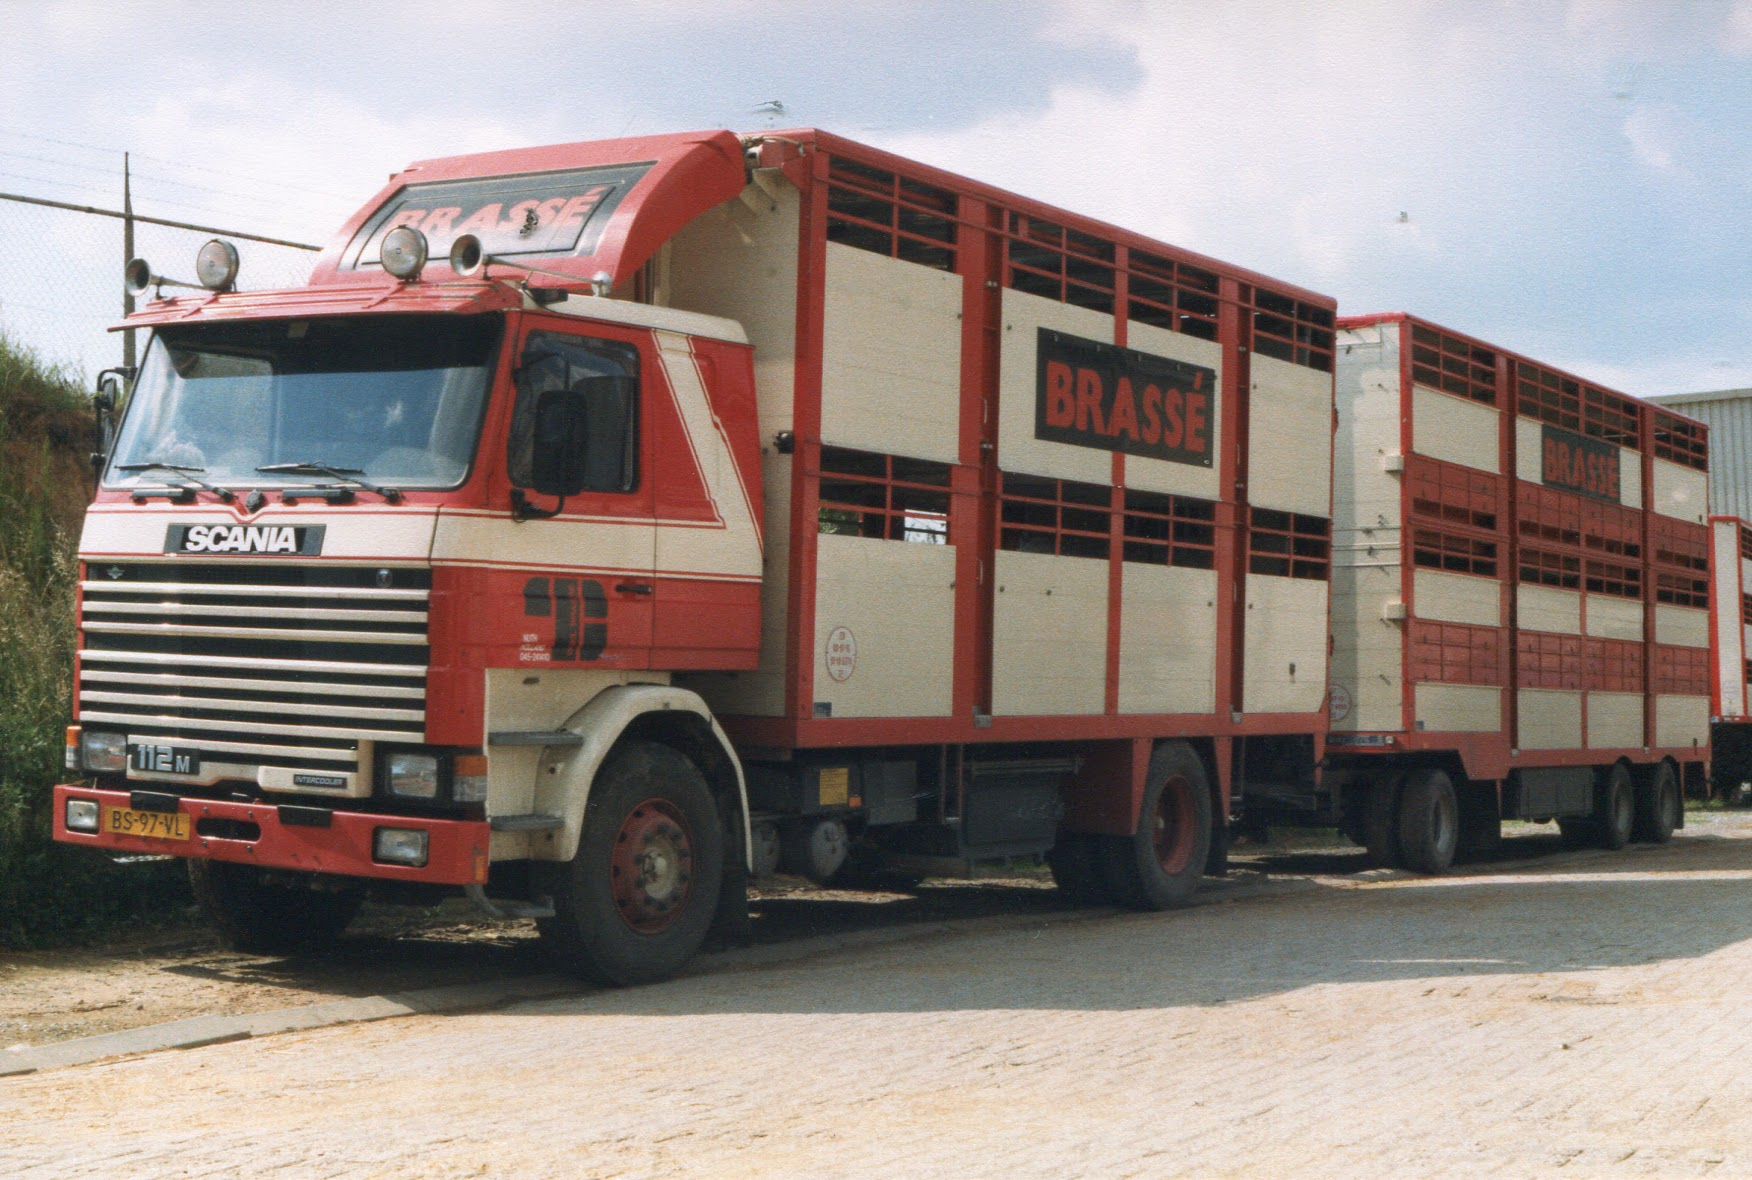 Scania Vee transport